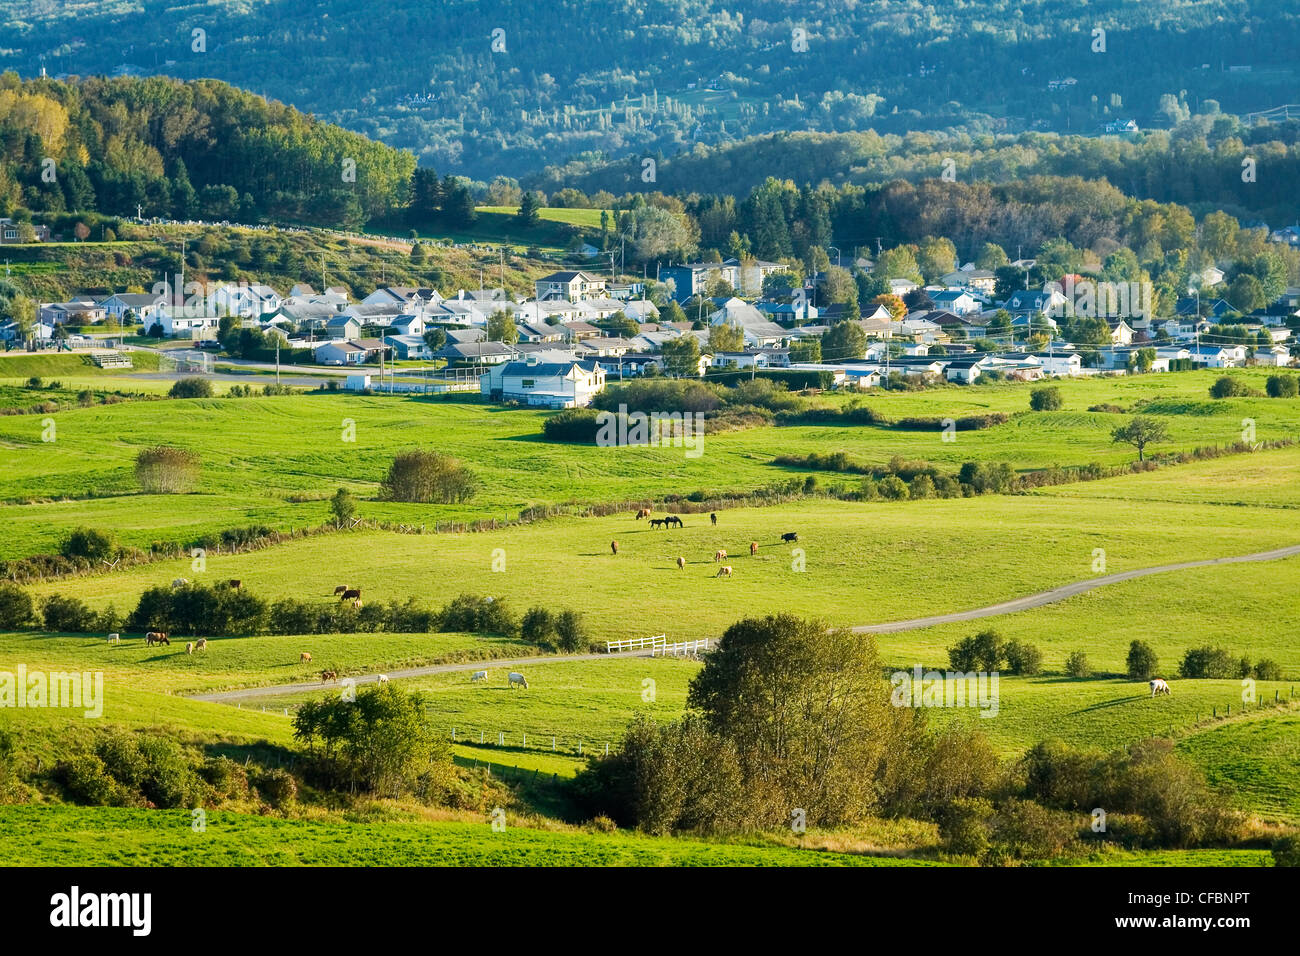 Picturesque suburb of La Malbaie in close proximity to farms and pastures, Charlevoix, Quebec, Canada - Stock Image